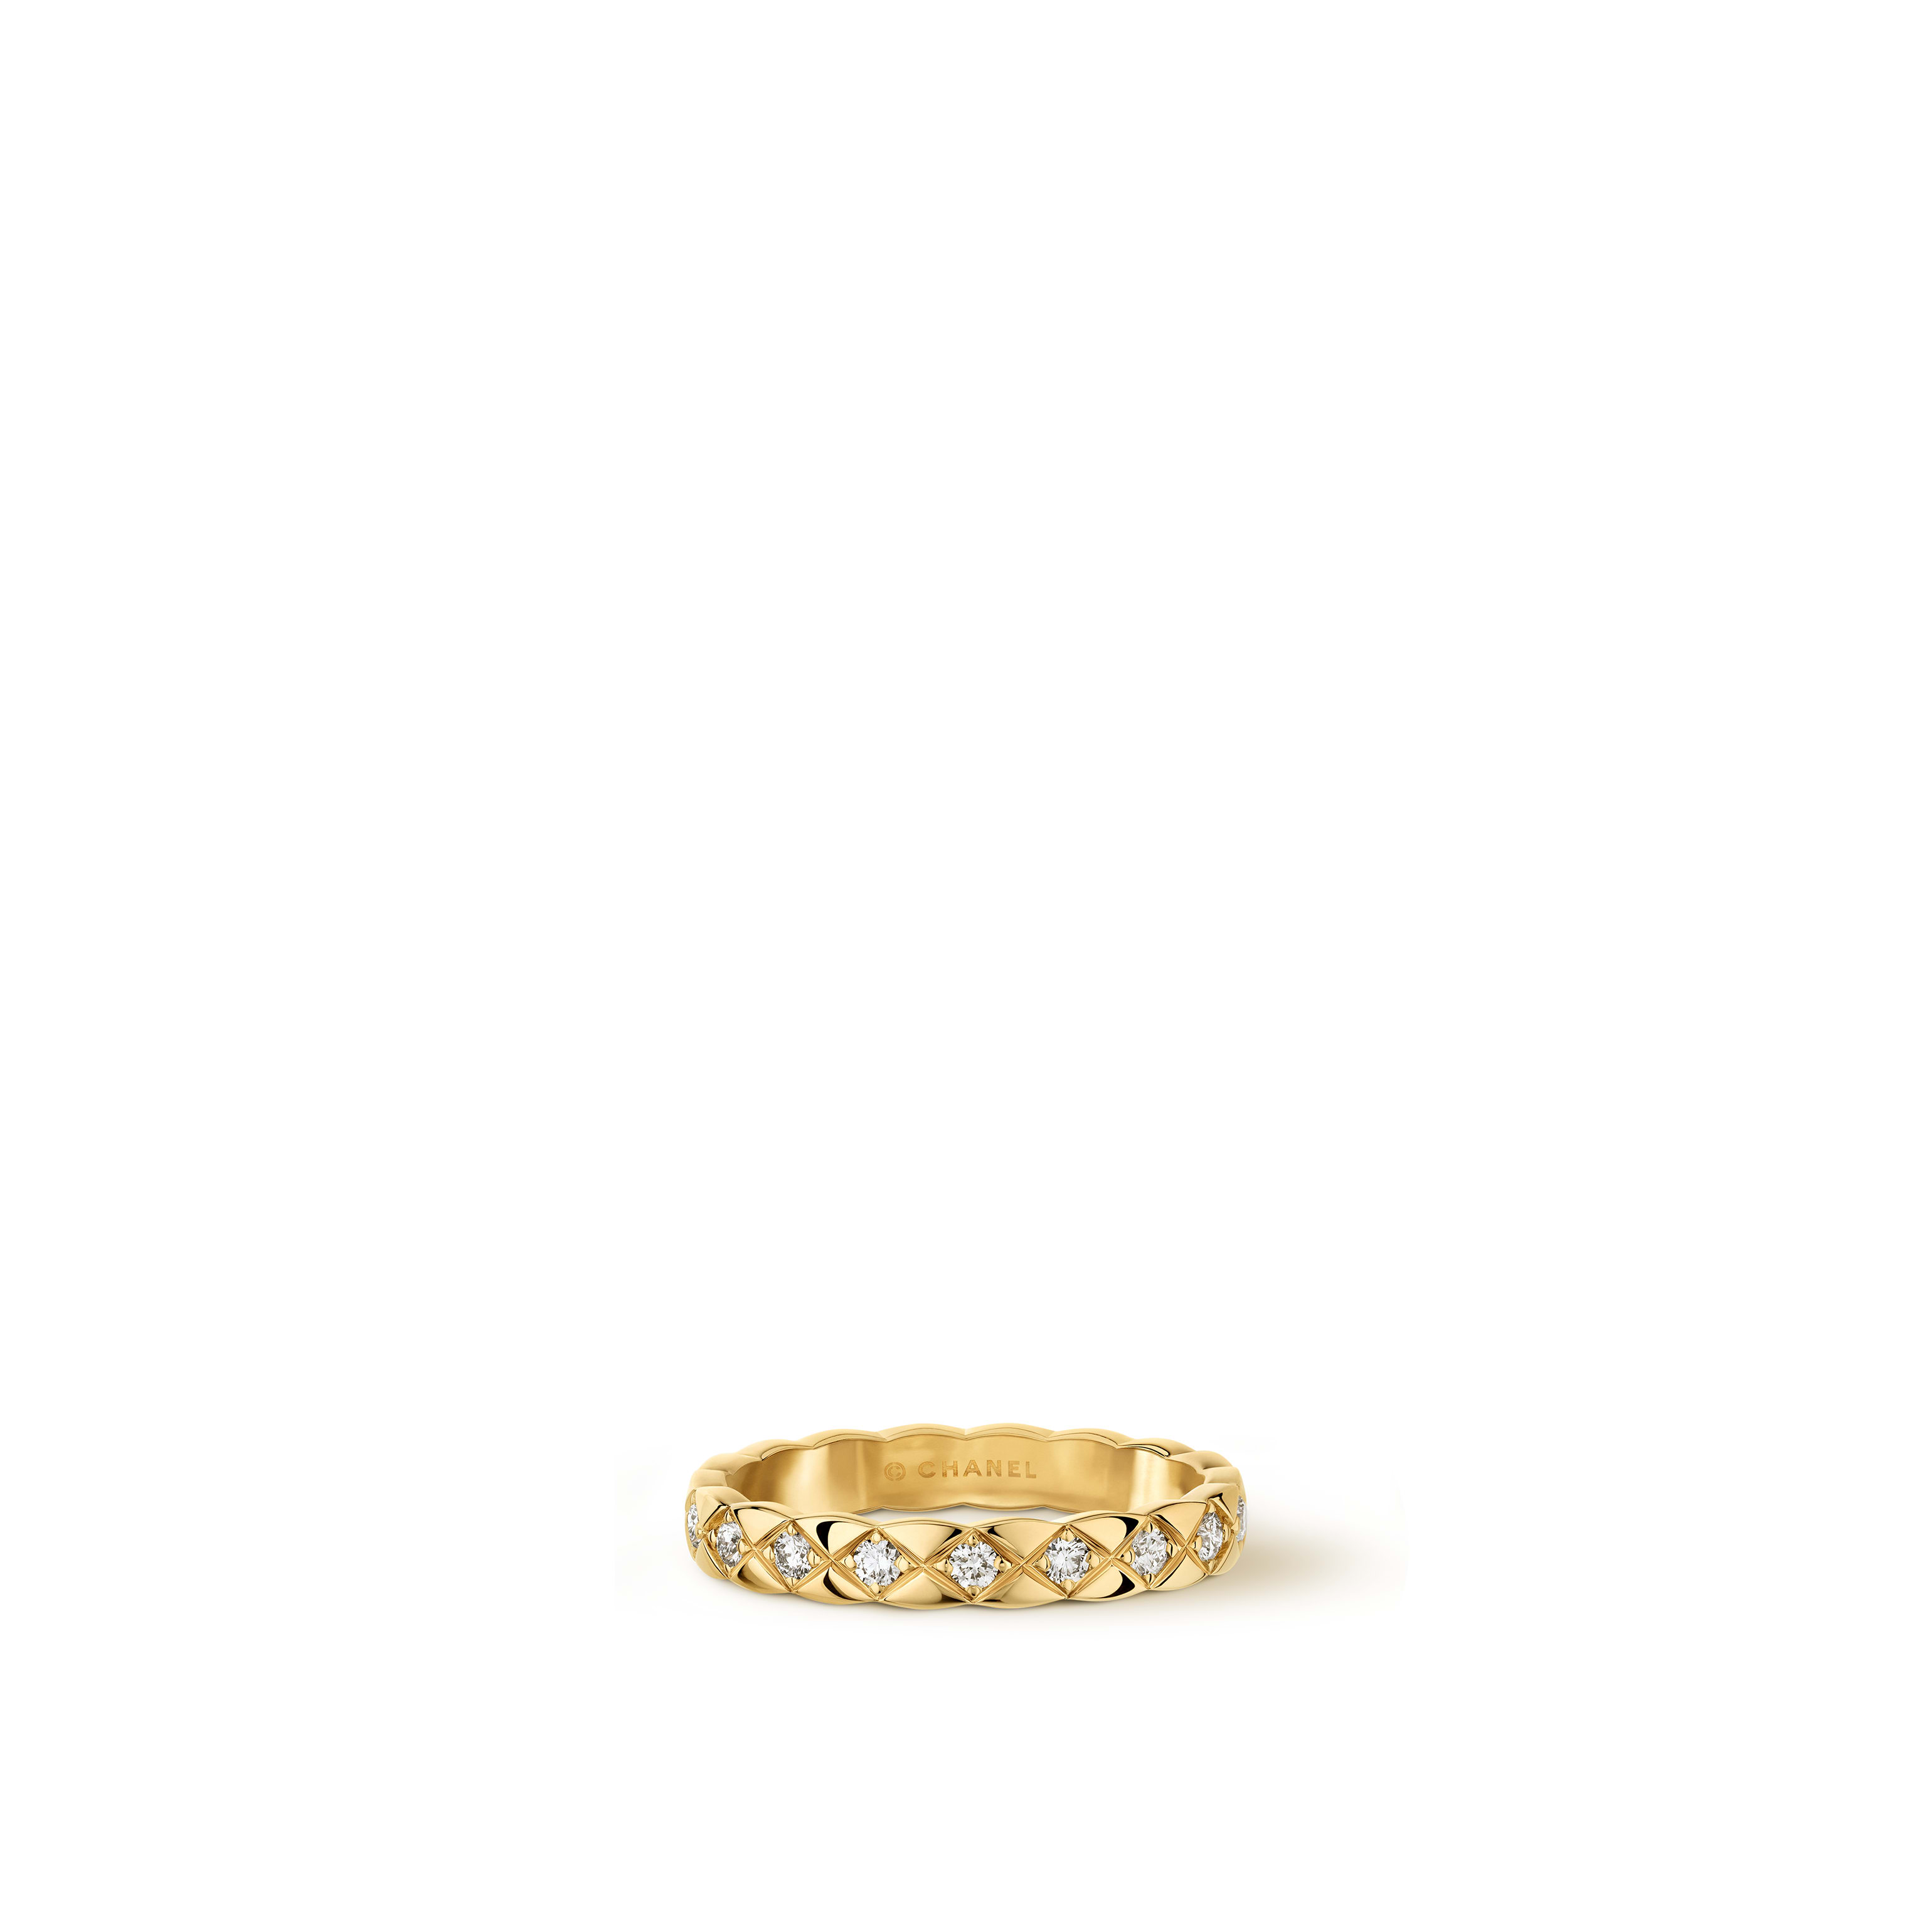 Coco Crush ring - Quilted motif, mini version, 18K yellow gold, diamonds - CHANEL - Default view - see standard sized version